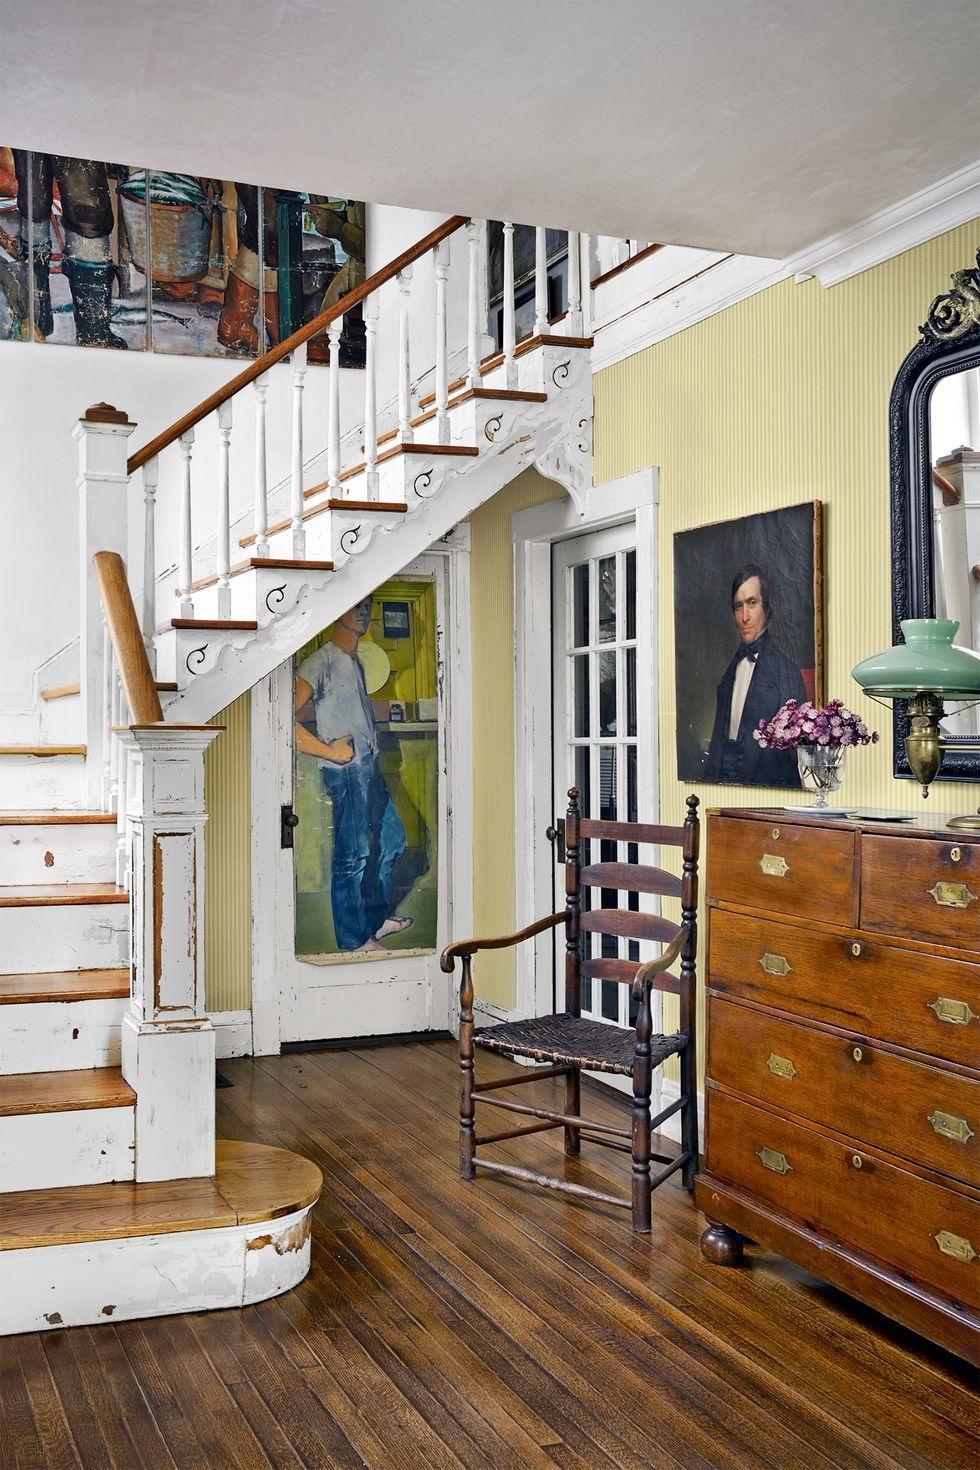 20 Best Under Stair Storage Ideas What To Do With Empty Space | Space Under Staircase Design | Indoor | Clever | Innovative | Wooden | Understairs